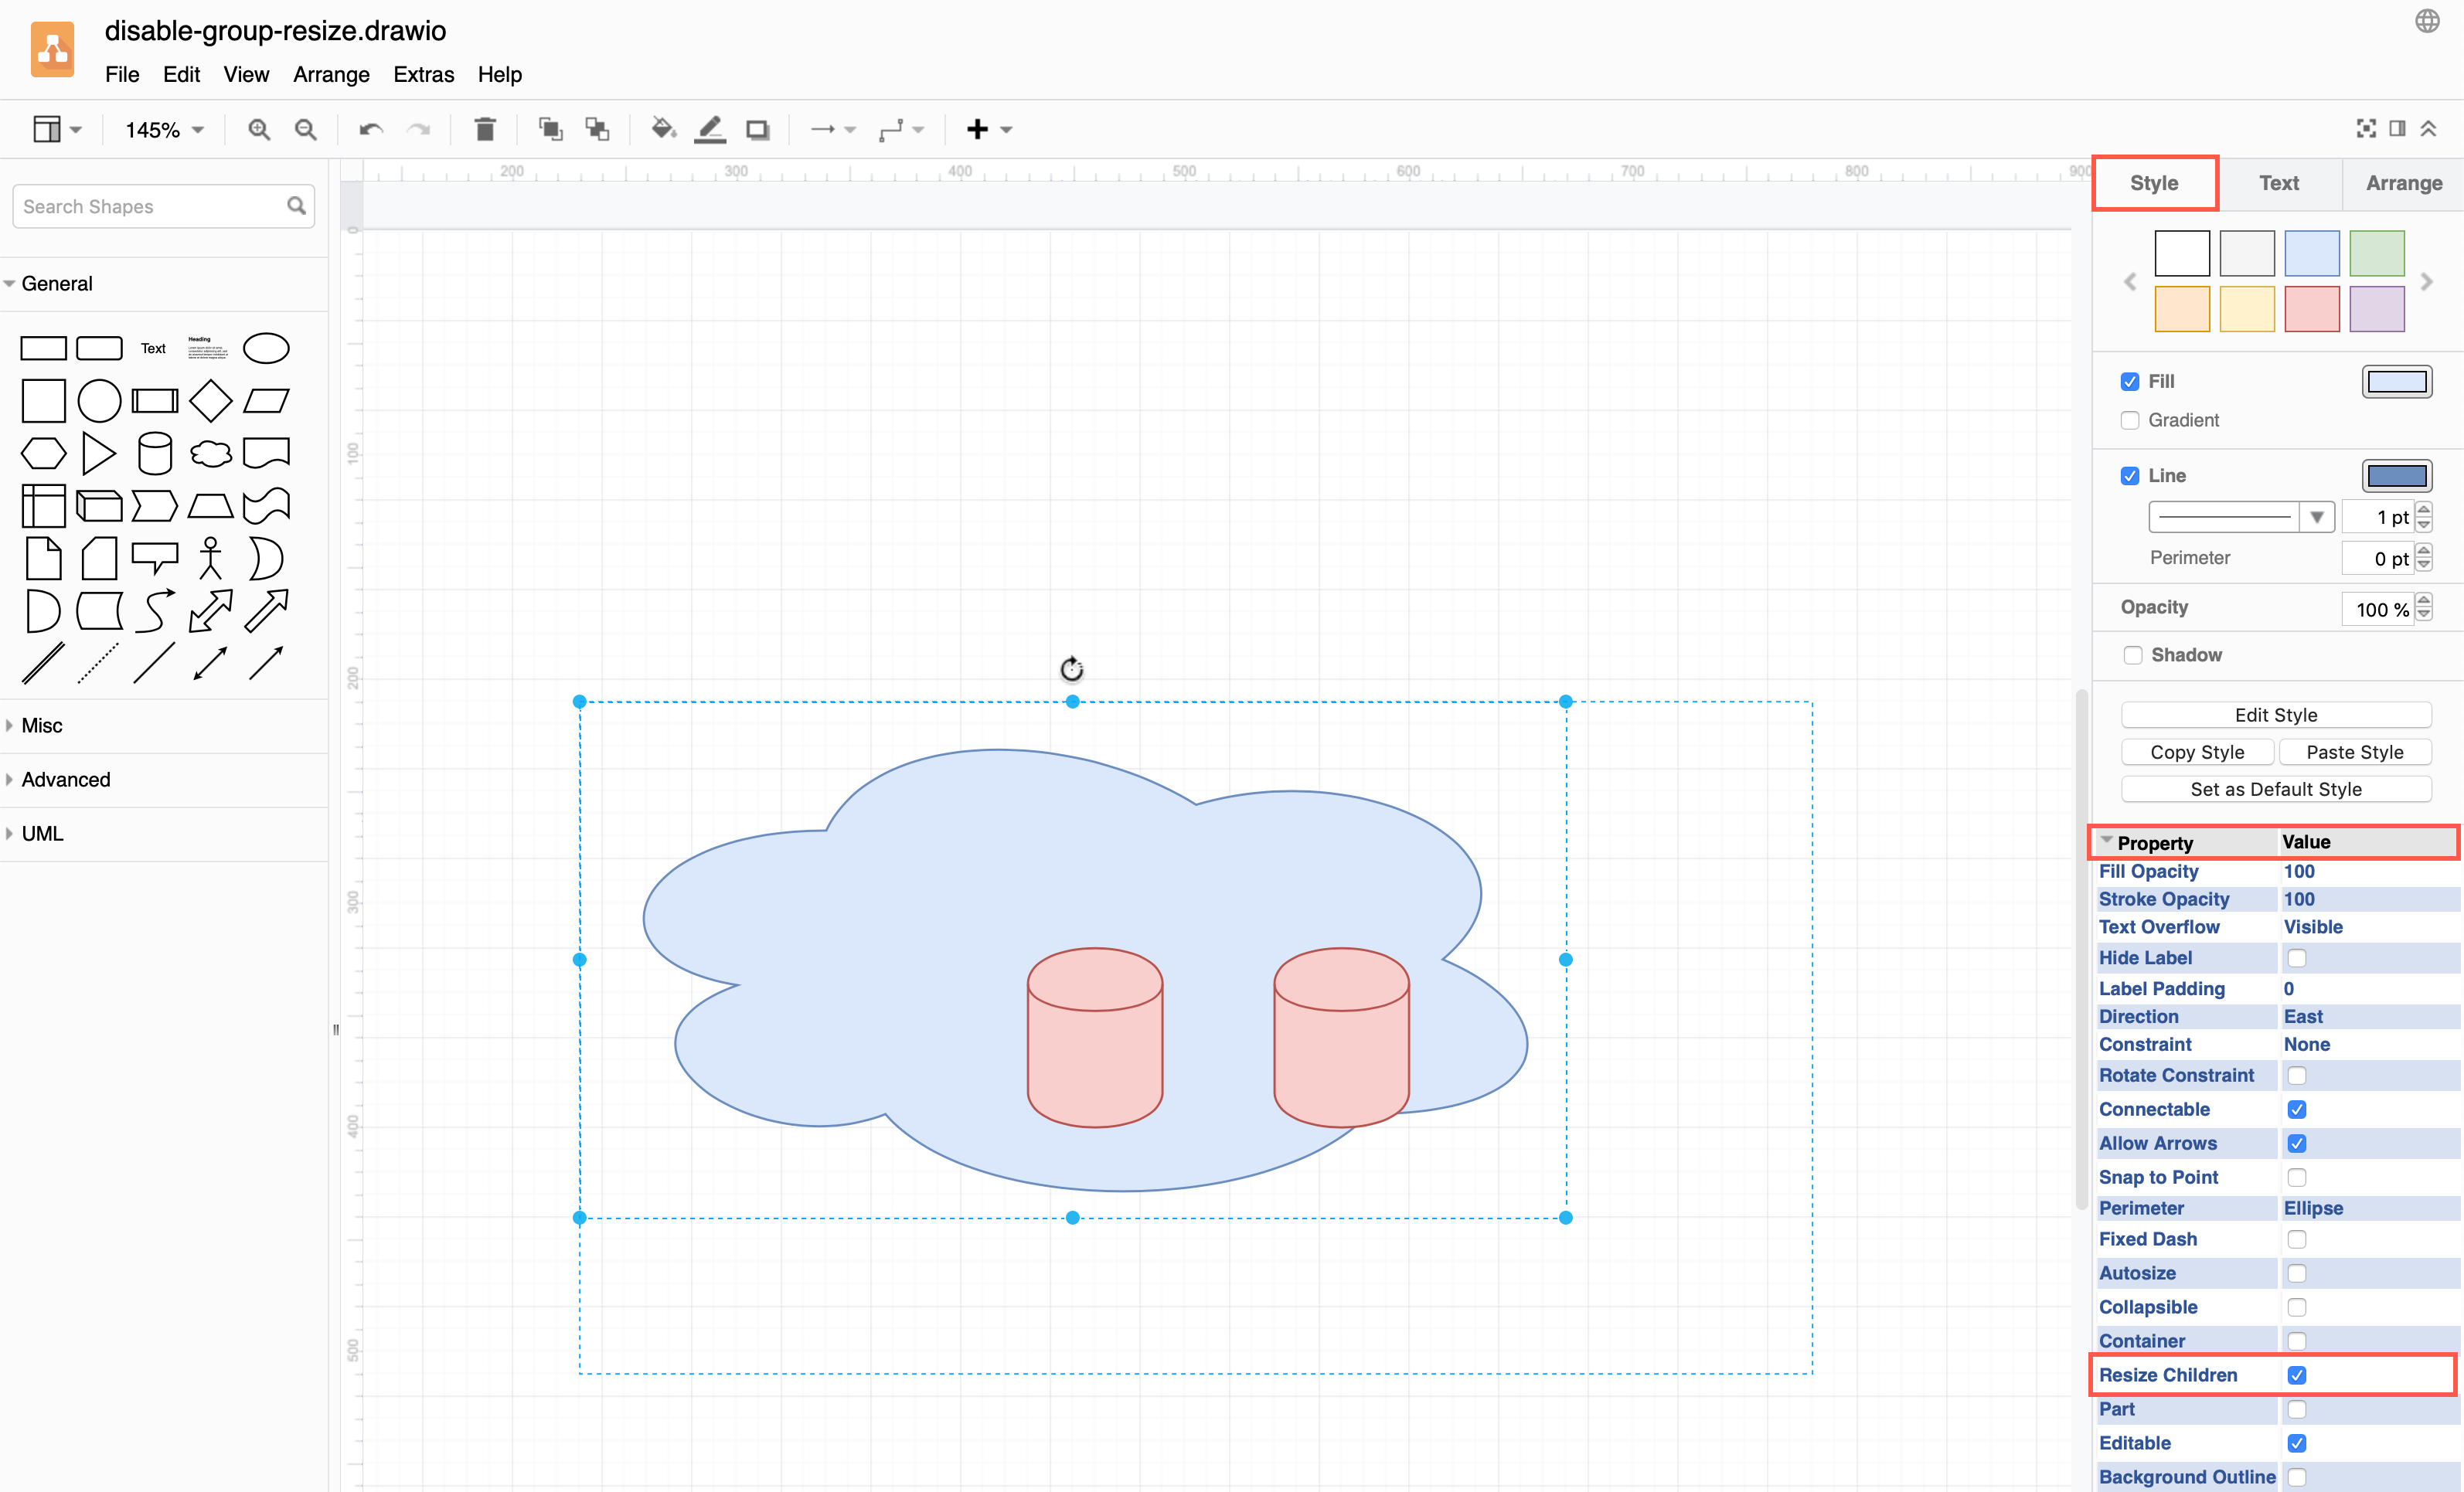 Disable Resize Children in the shape properties to resize grouped shapes individually